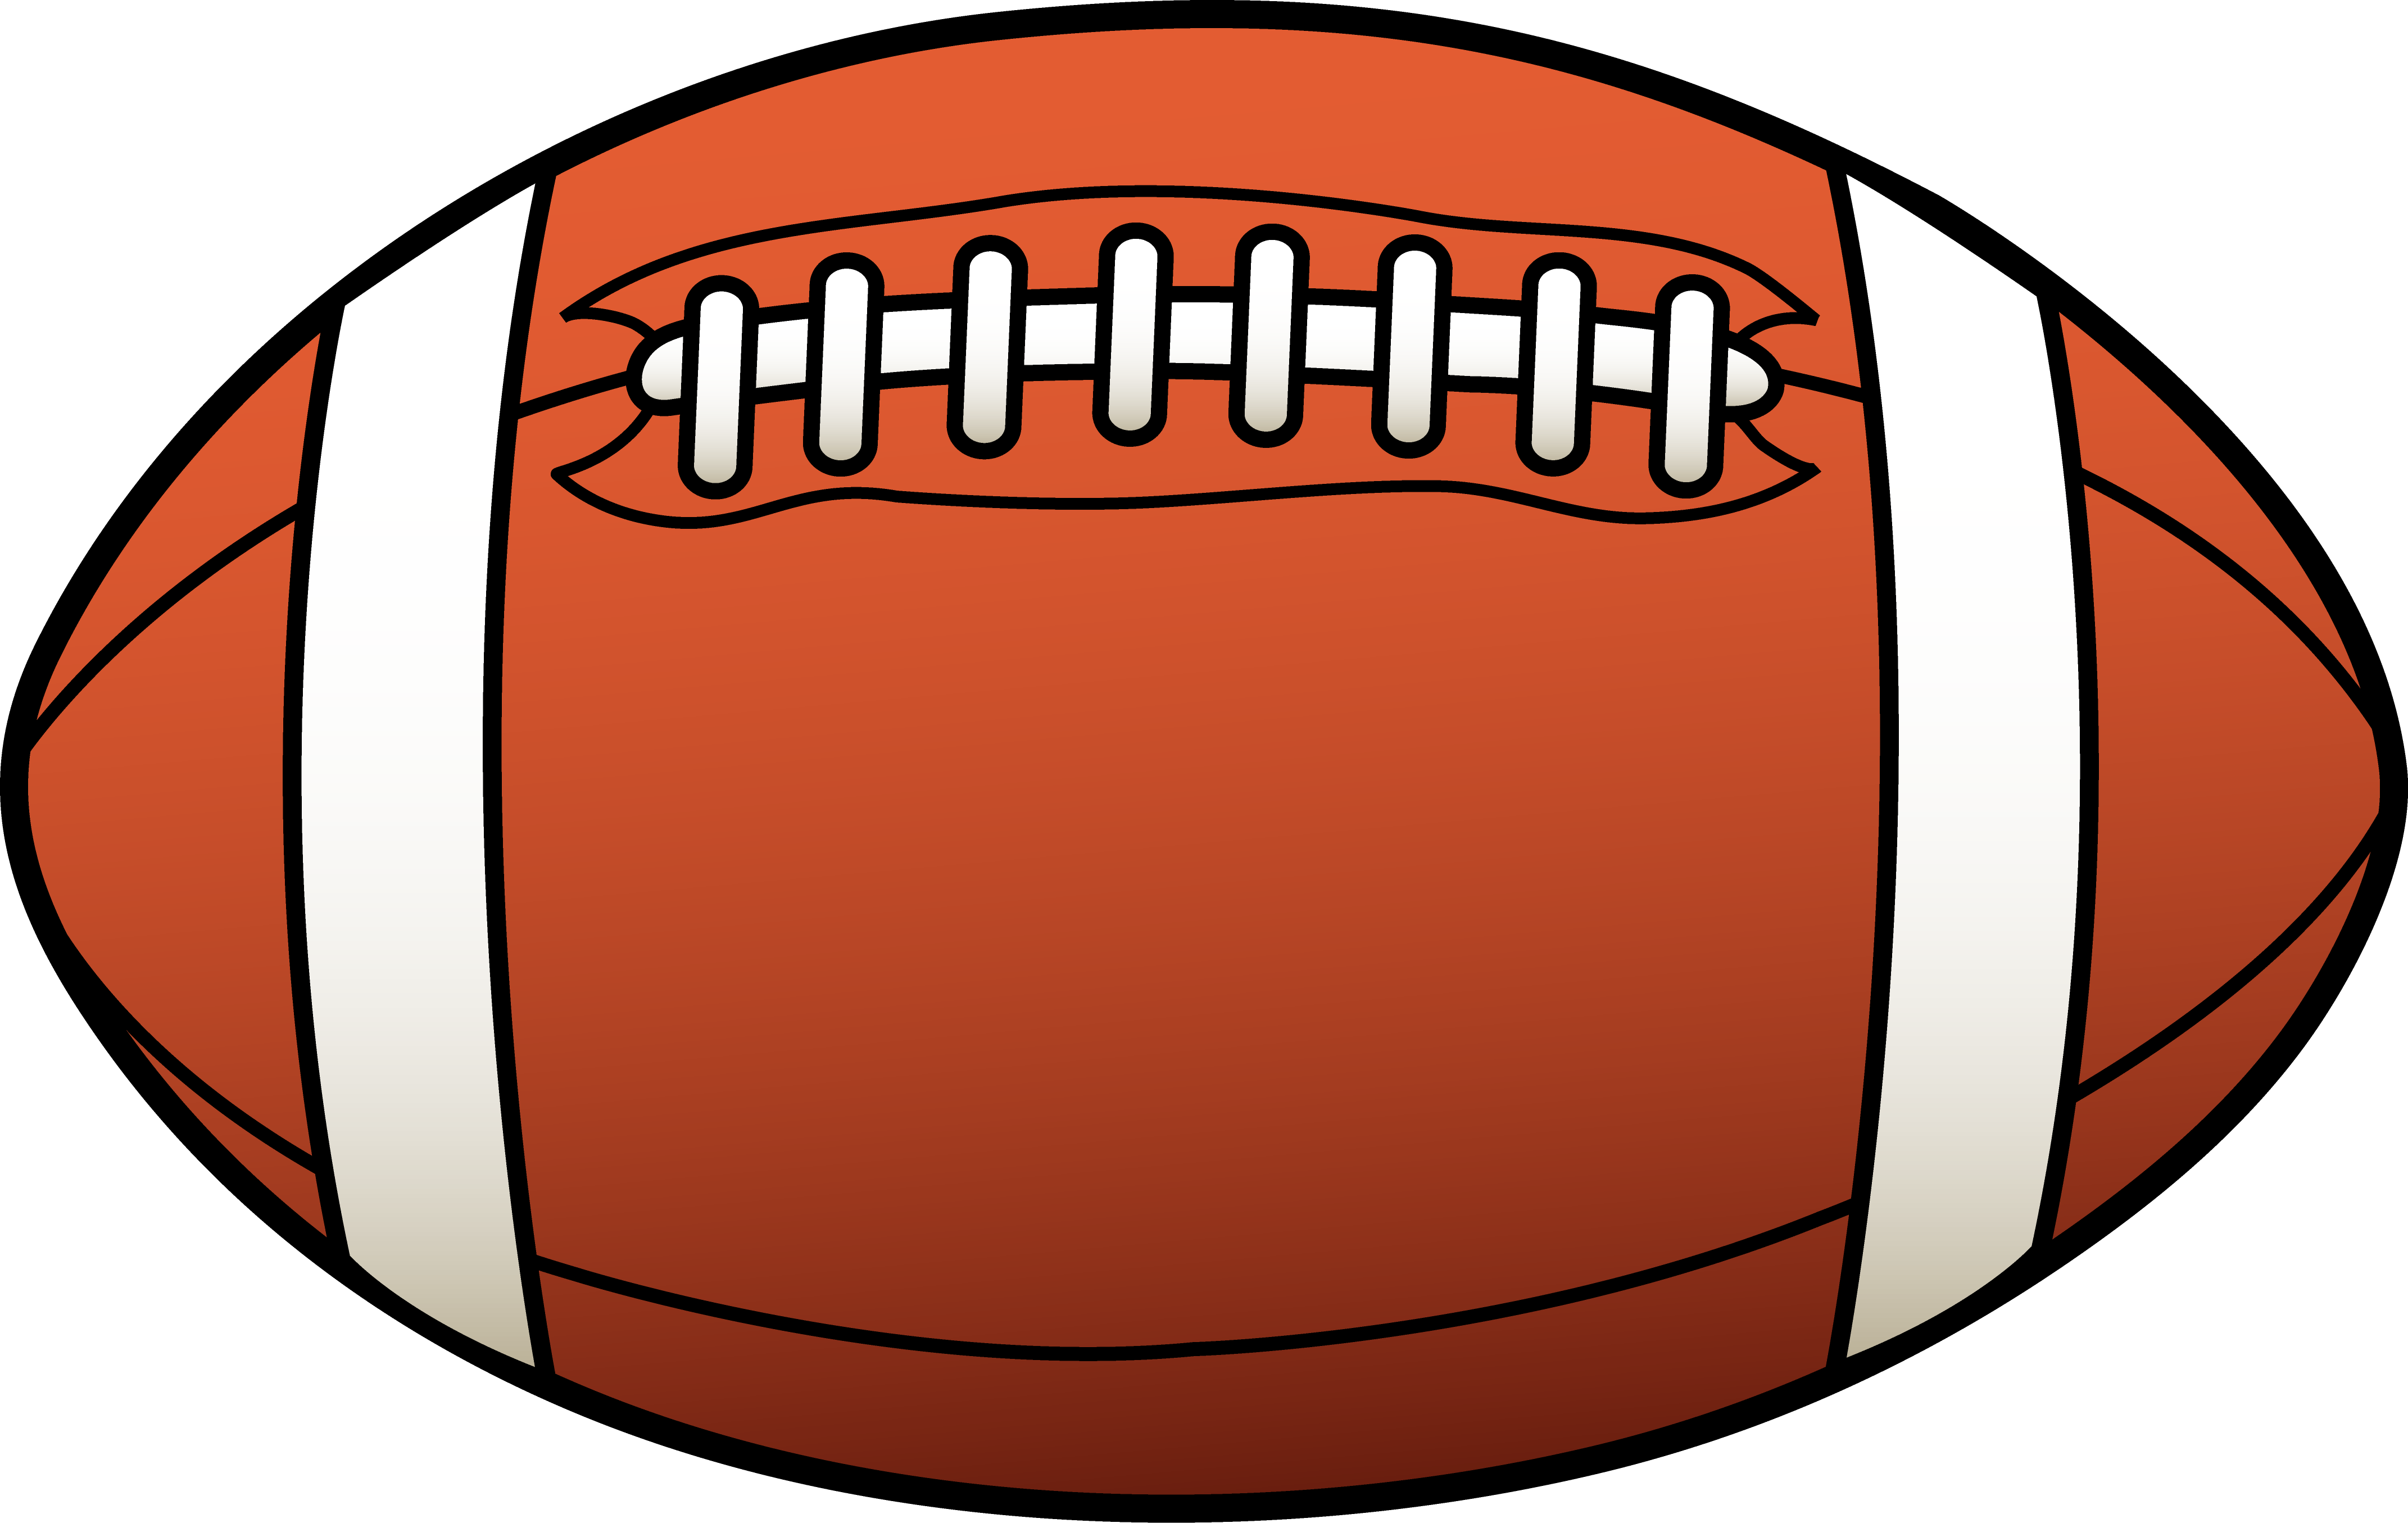 Rugby Ball or American Football - Free Clip Art